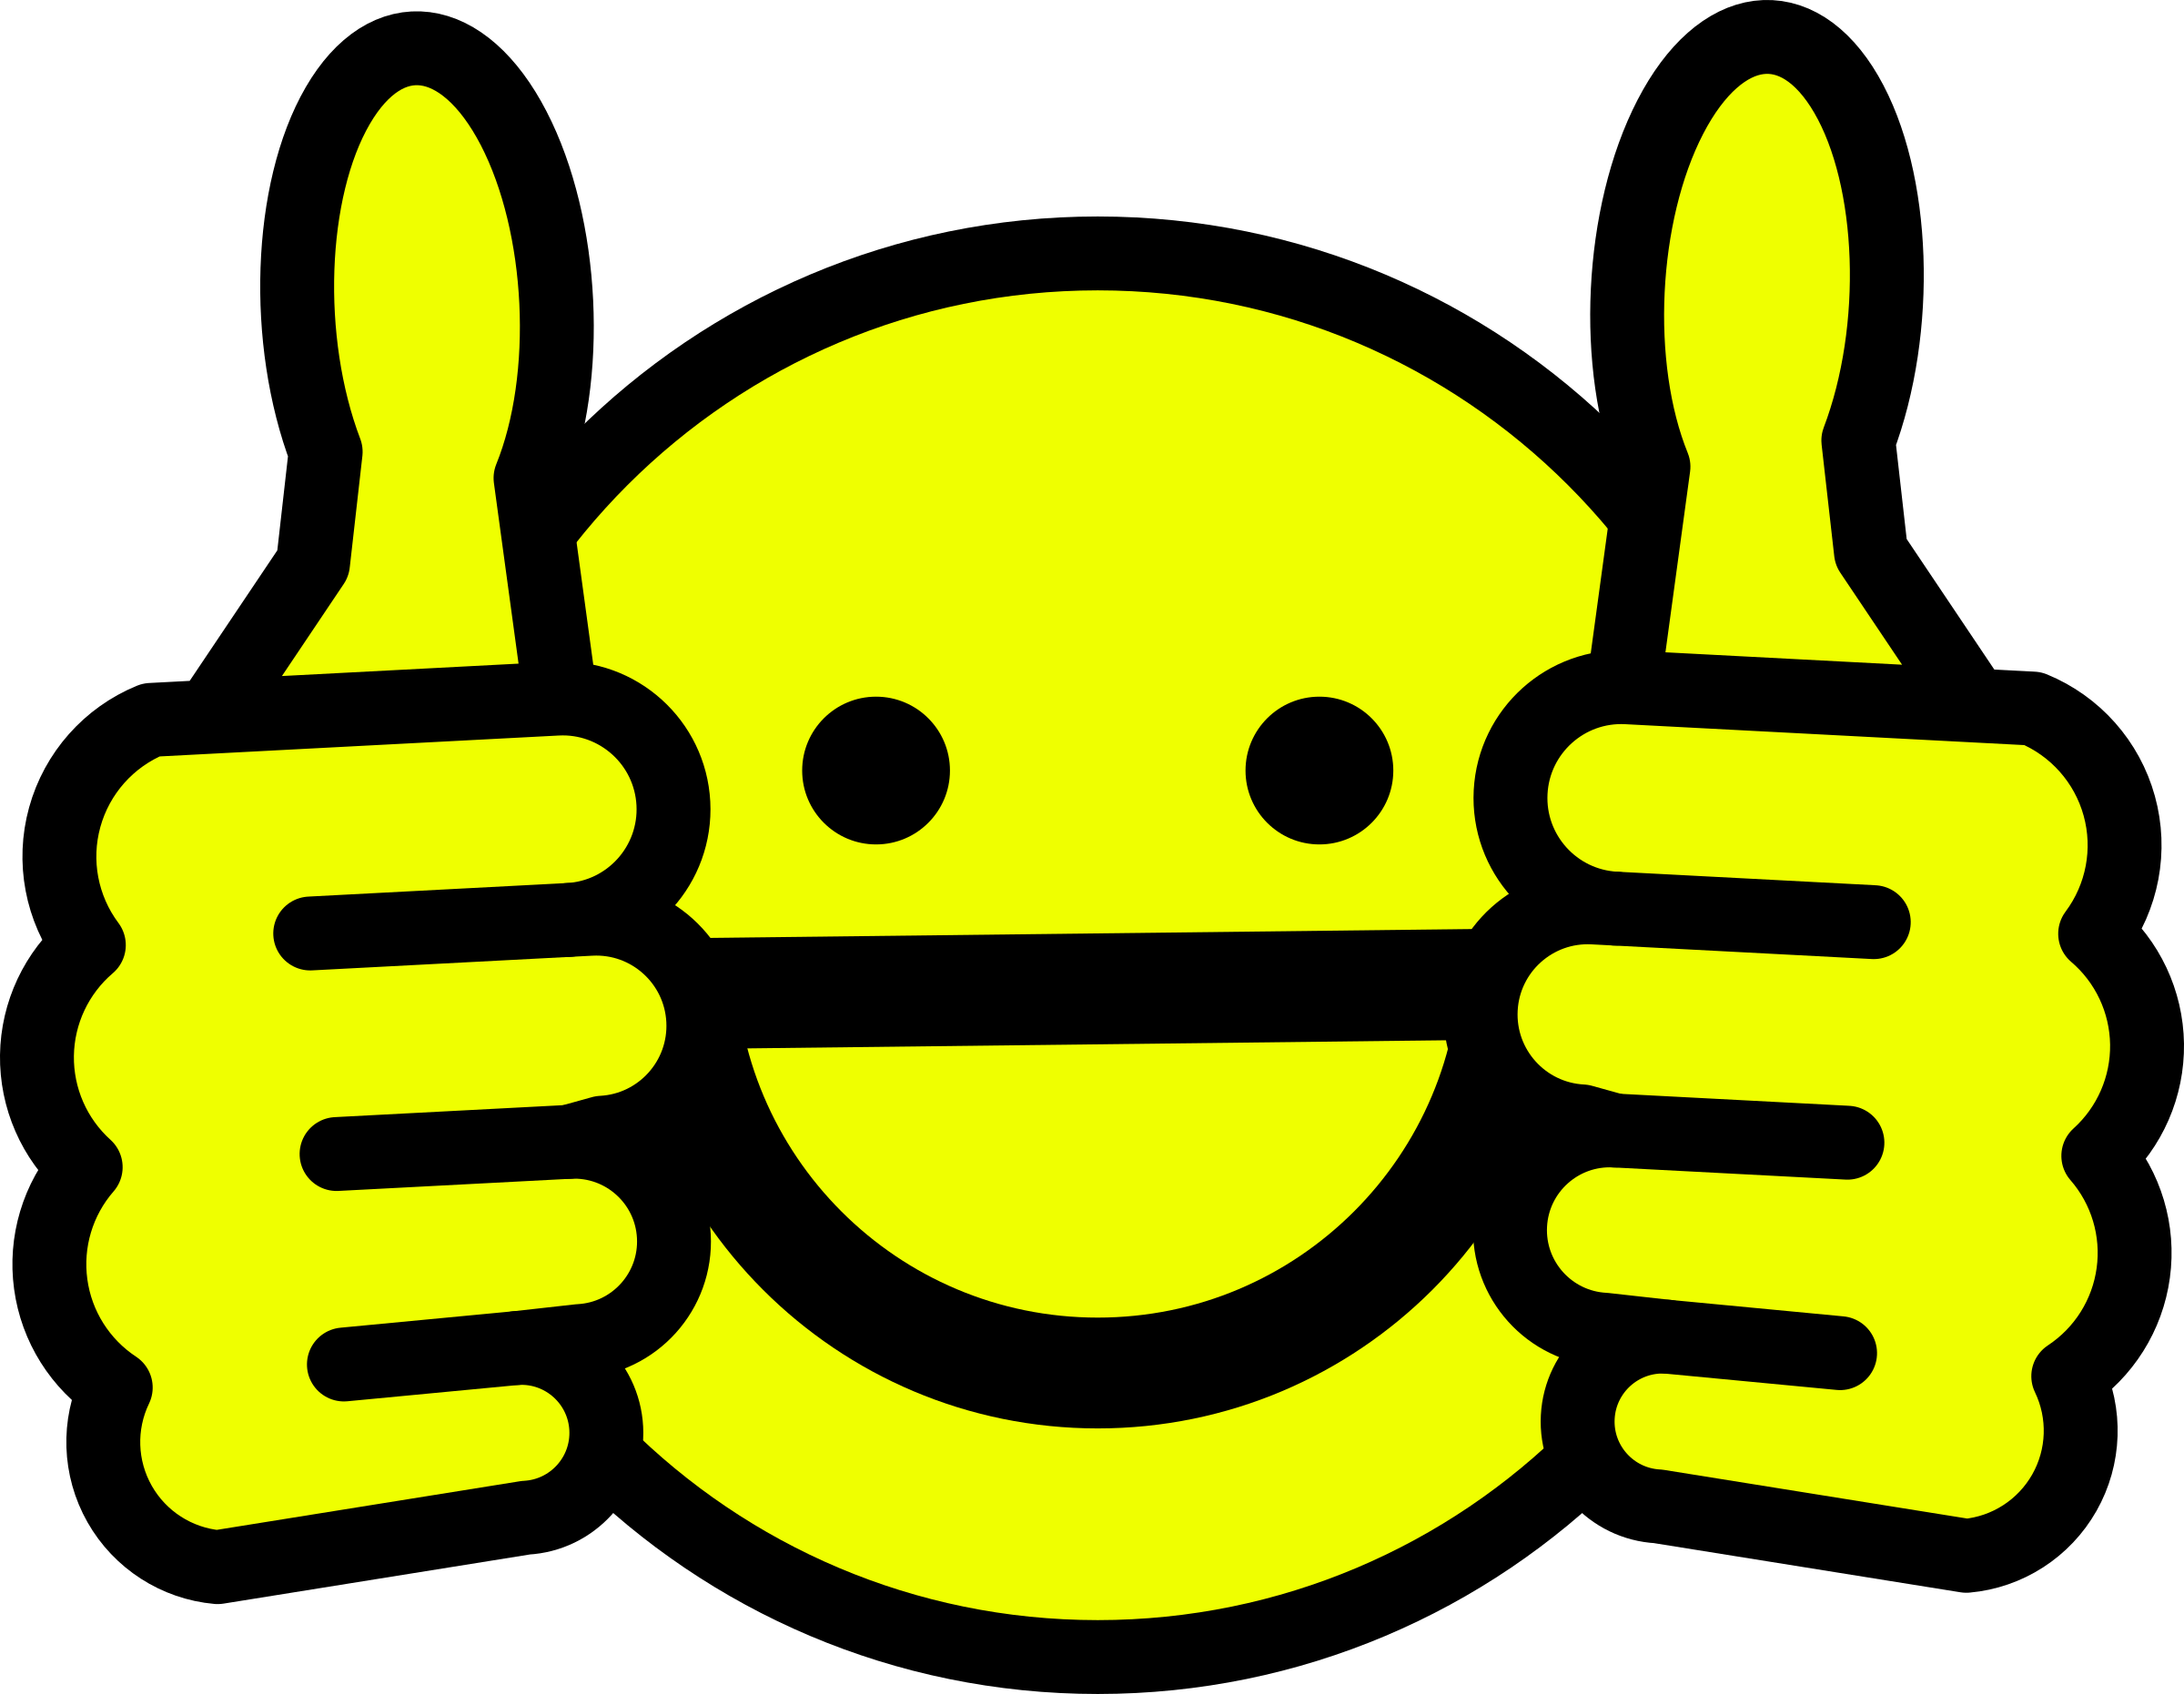 Smiley Face Transparent Background